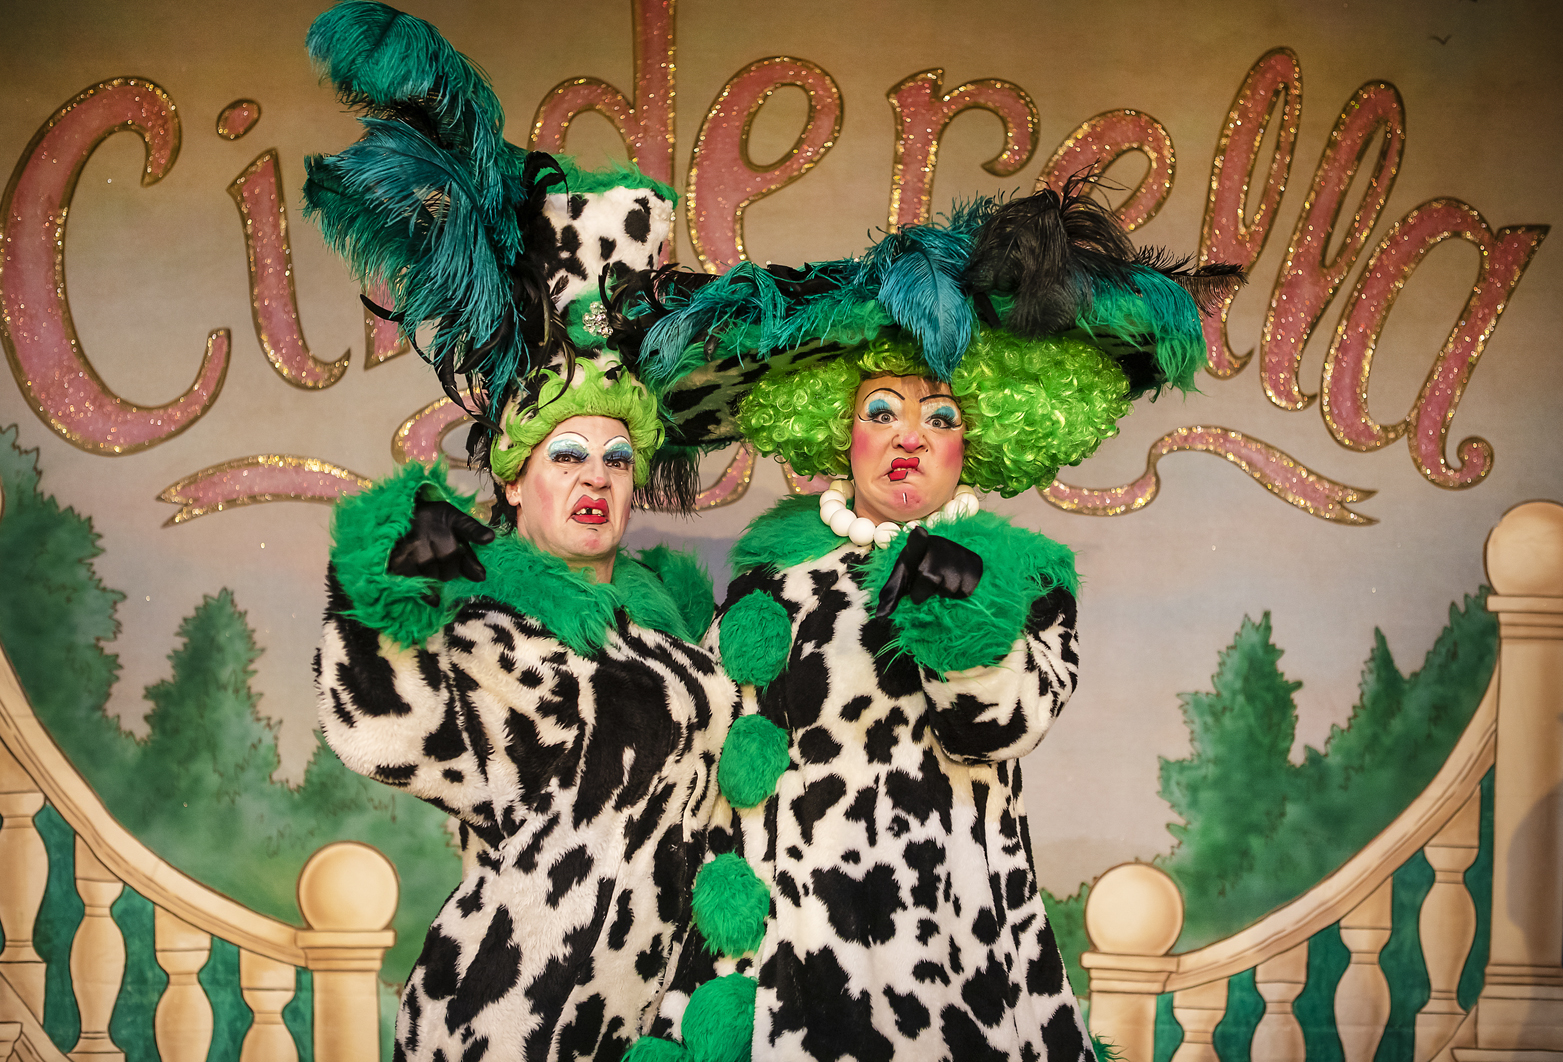 005_Lichfield Panto 2019 Press Launch_Pamela Raith Photography